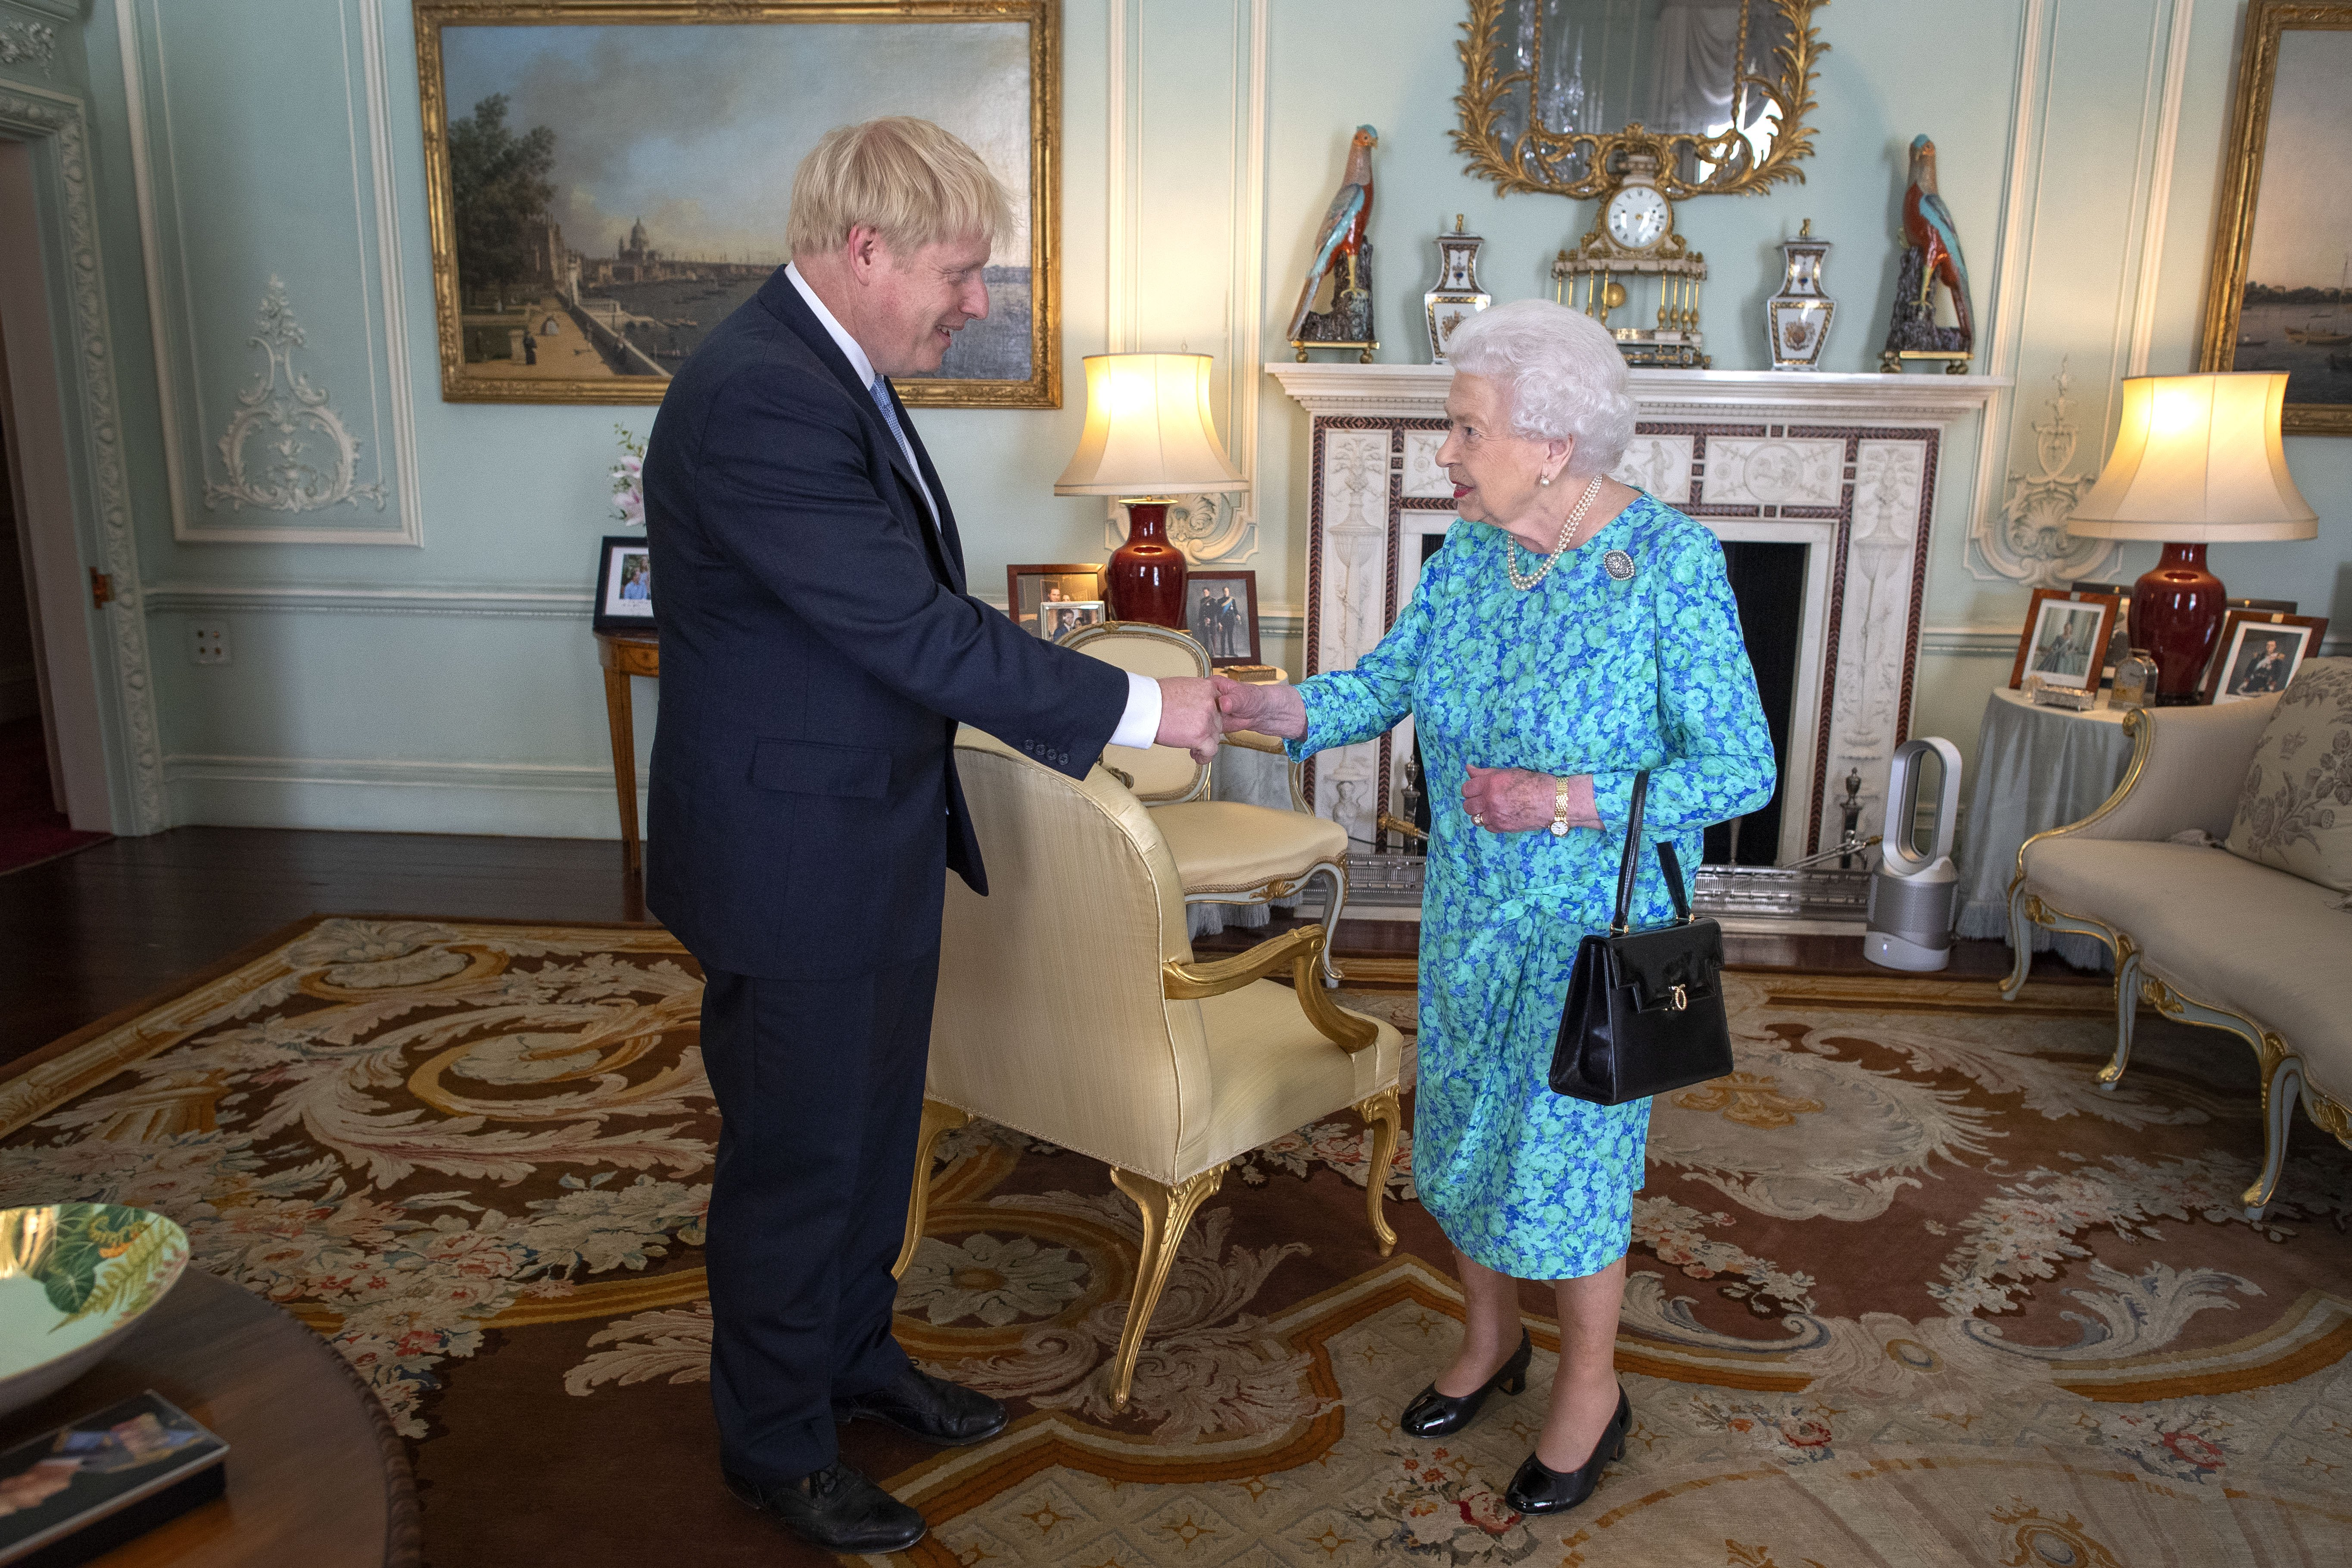 Queen Elizabeth II welcomes Boris Johnson in Buckingham Palace on July 24, 2019, in London, England. | Source: Getty Images.